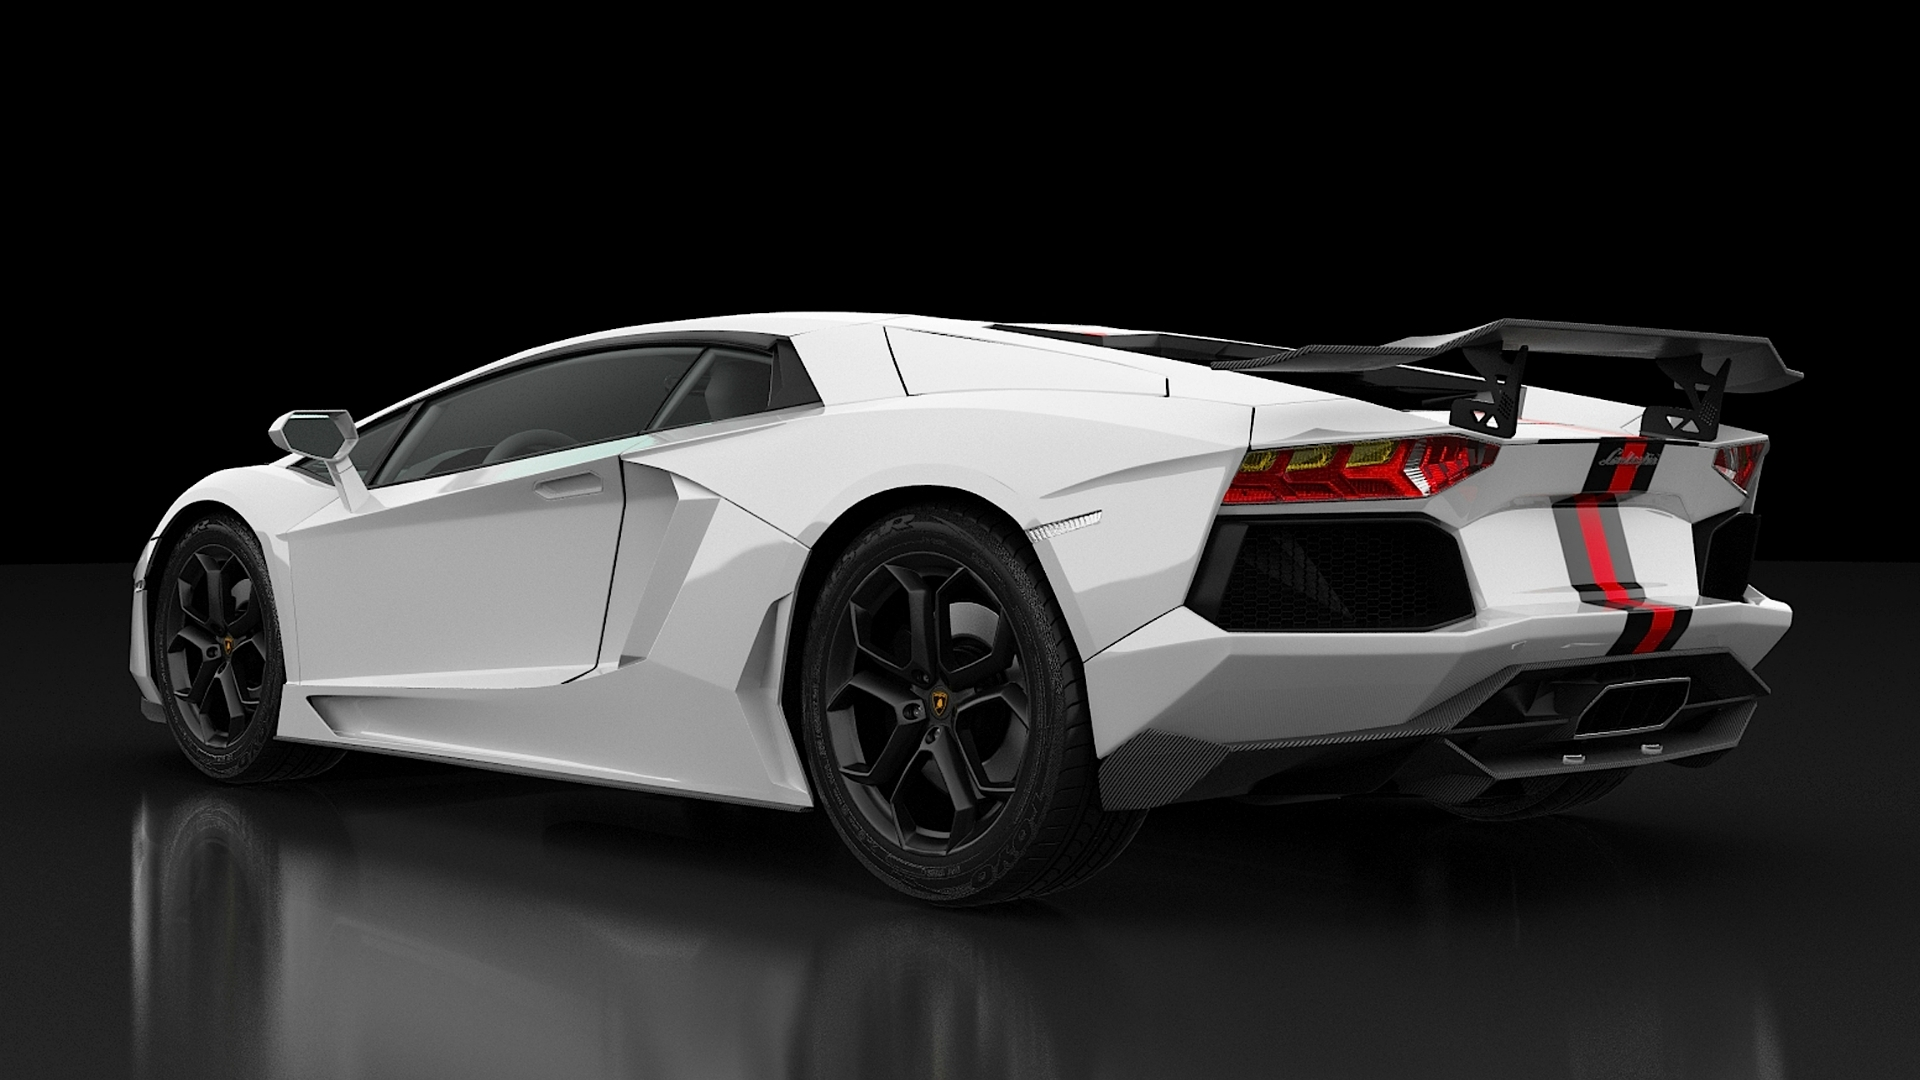 download Lamborghini LP900 Molto Veloce Wallpapers